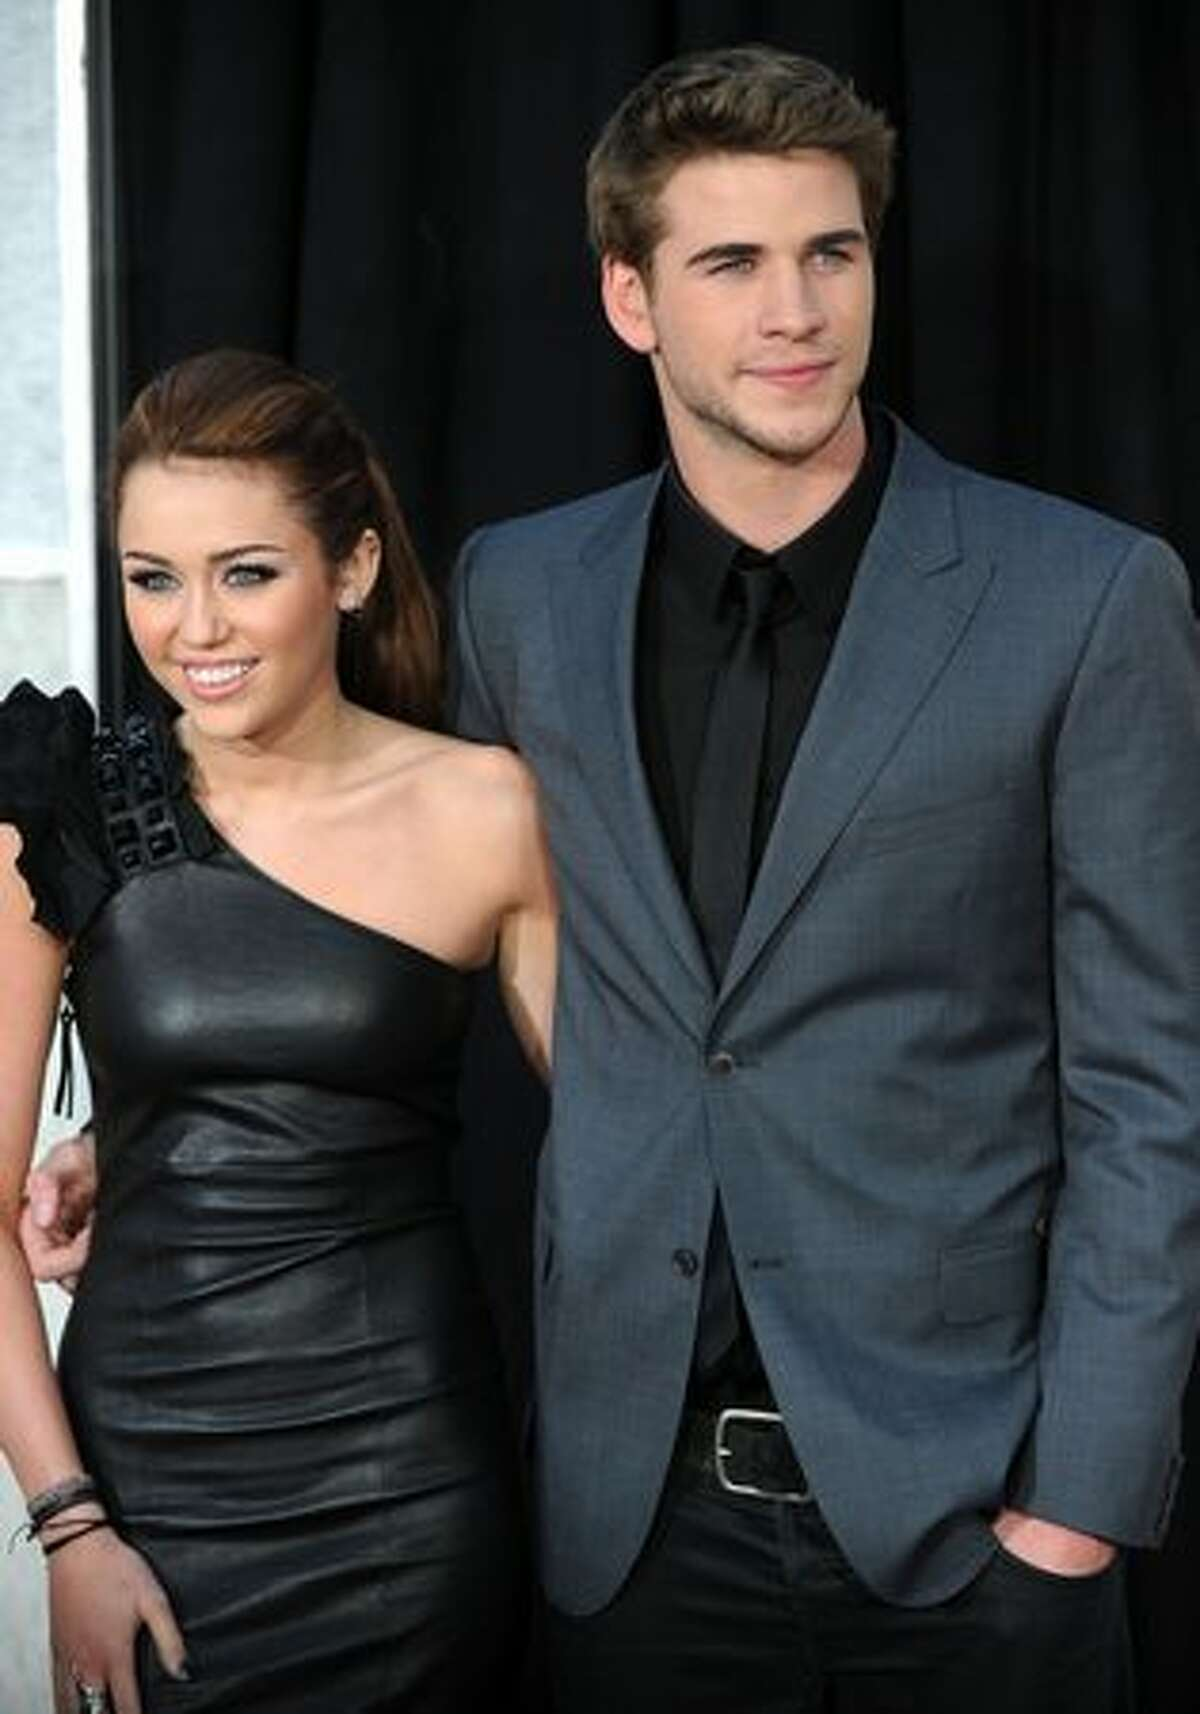 """Actress and singer Miley Cyrus and actor Liam Hemsworth arrive for the premiere of """"The Last Song"""" in Hollywood, California."""